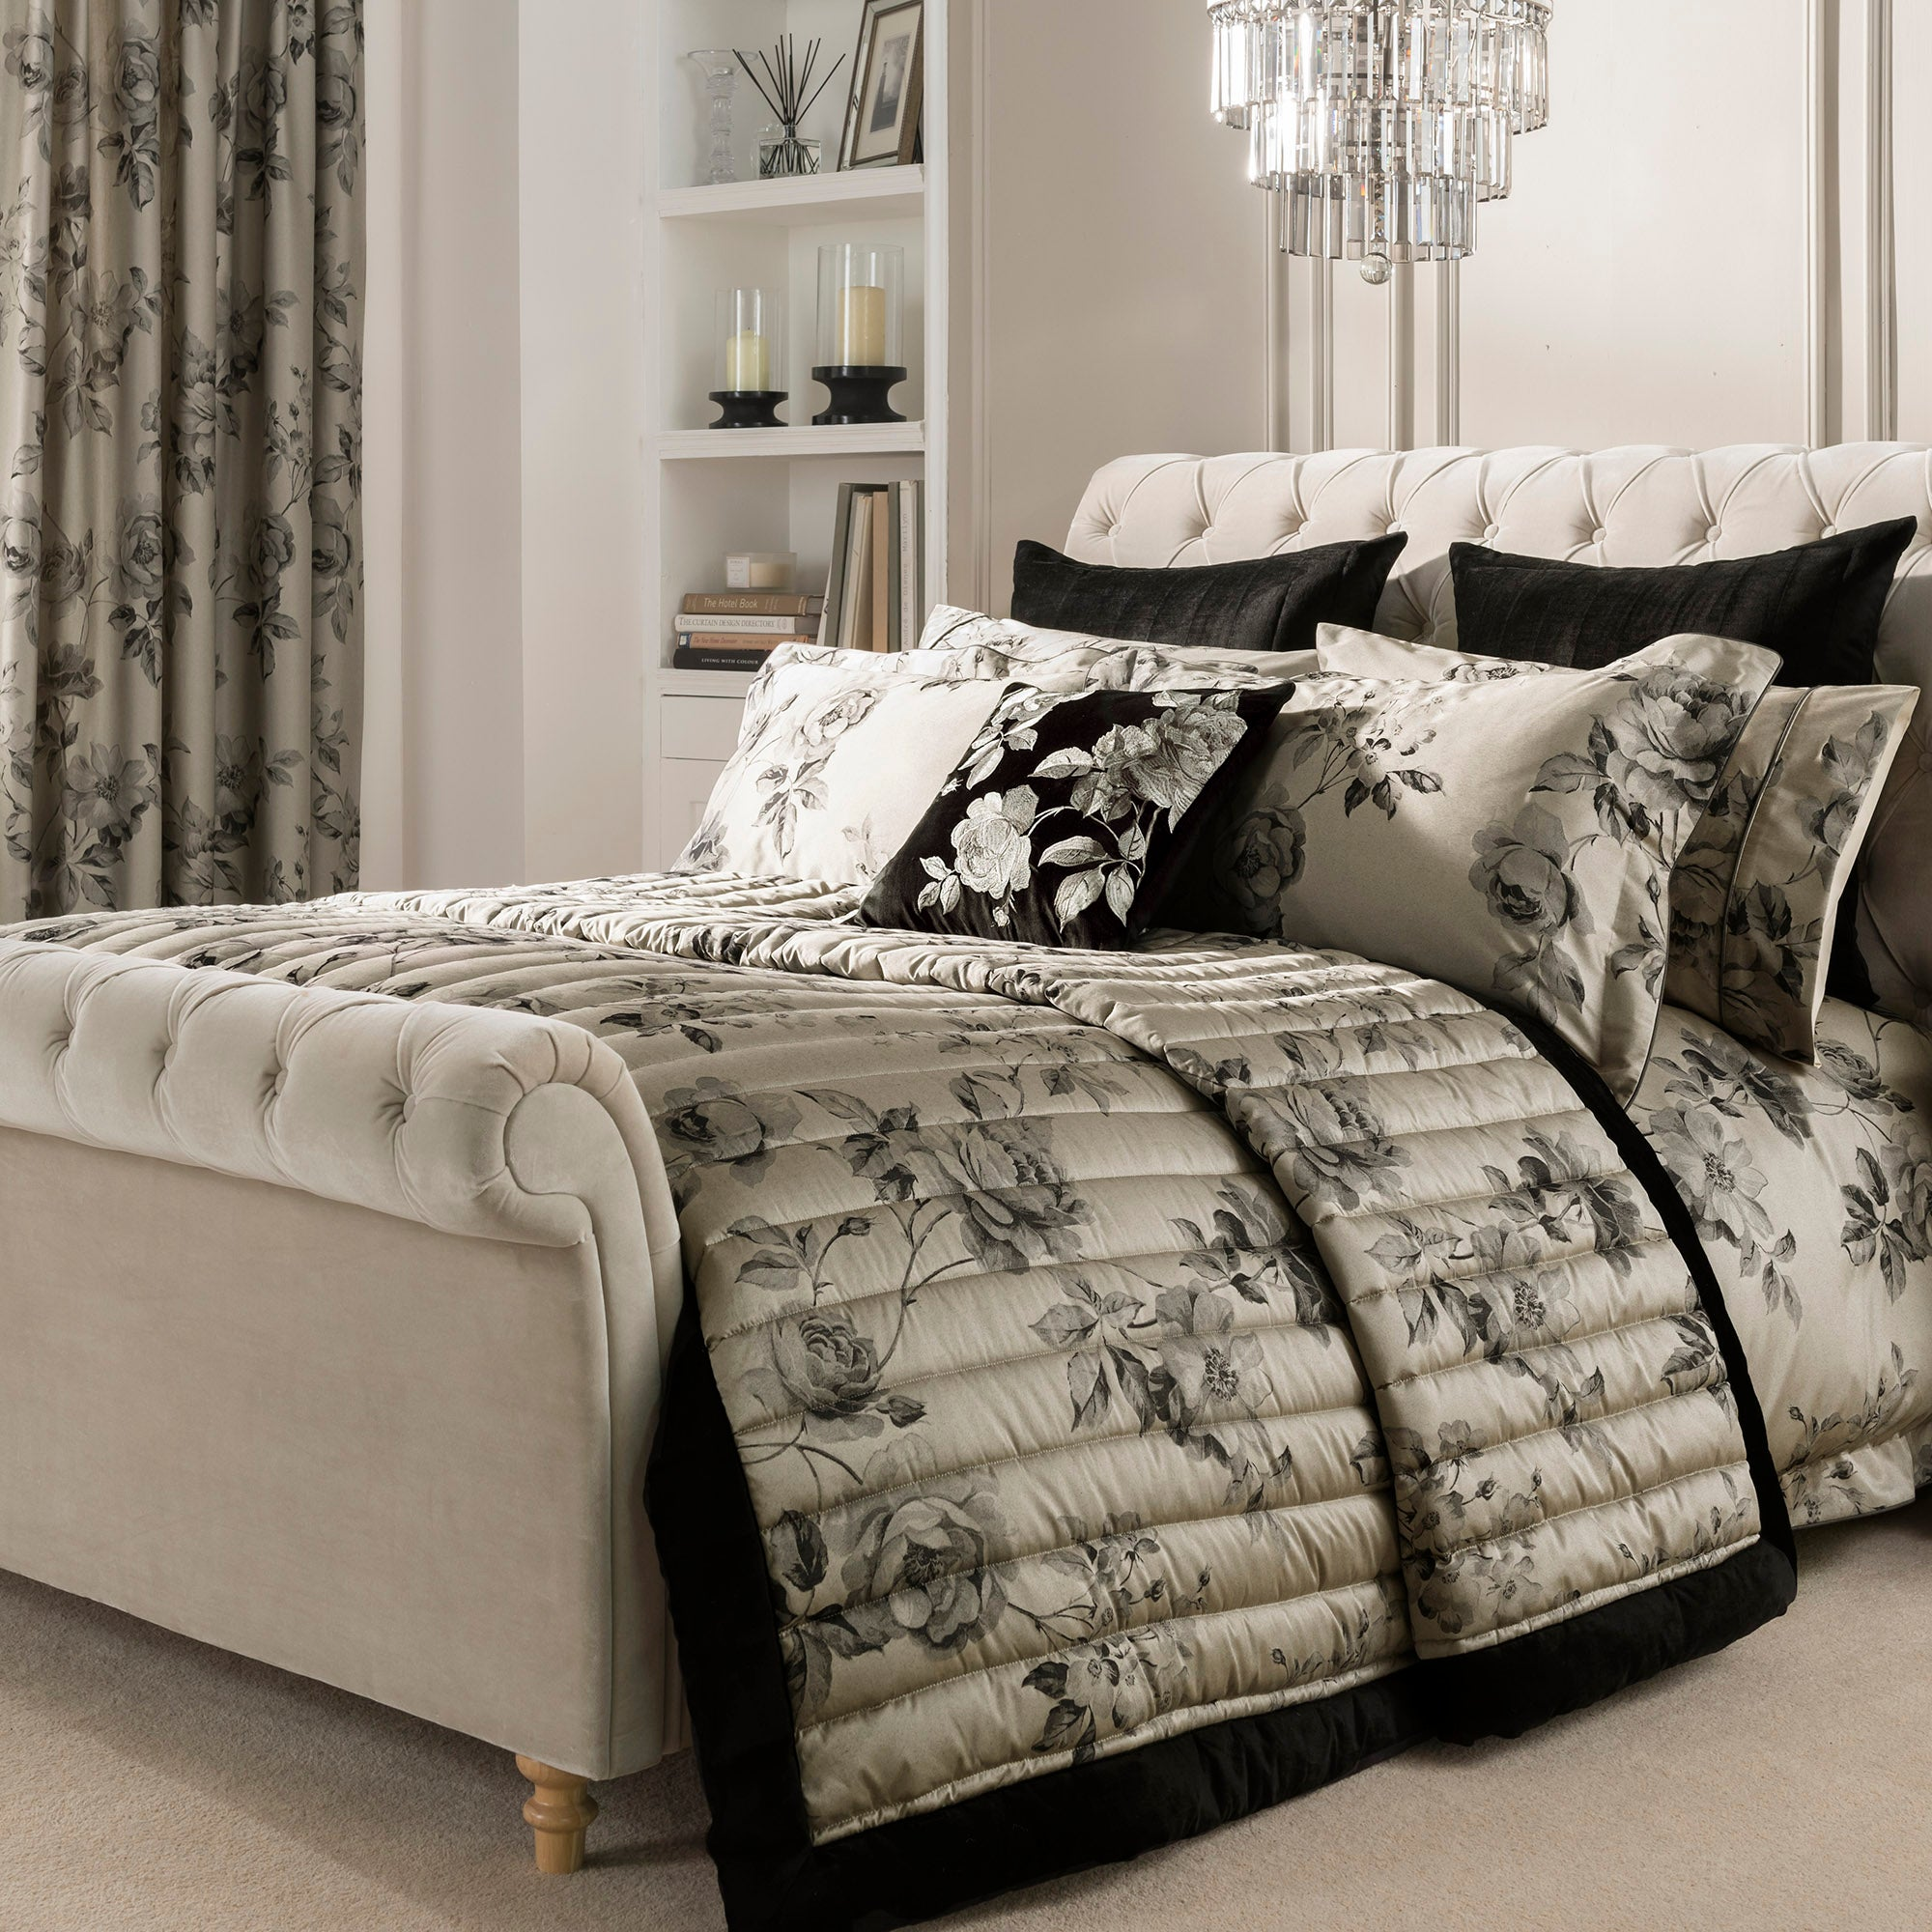 Dorma Harriet Charcoal Bed Linen Collection Dunelm